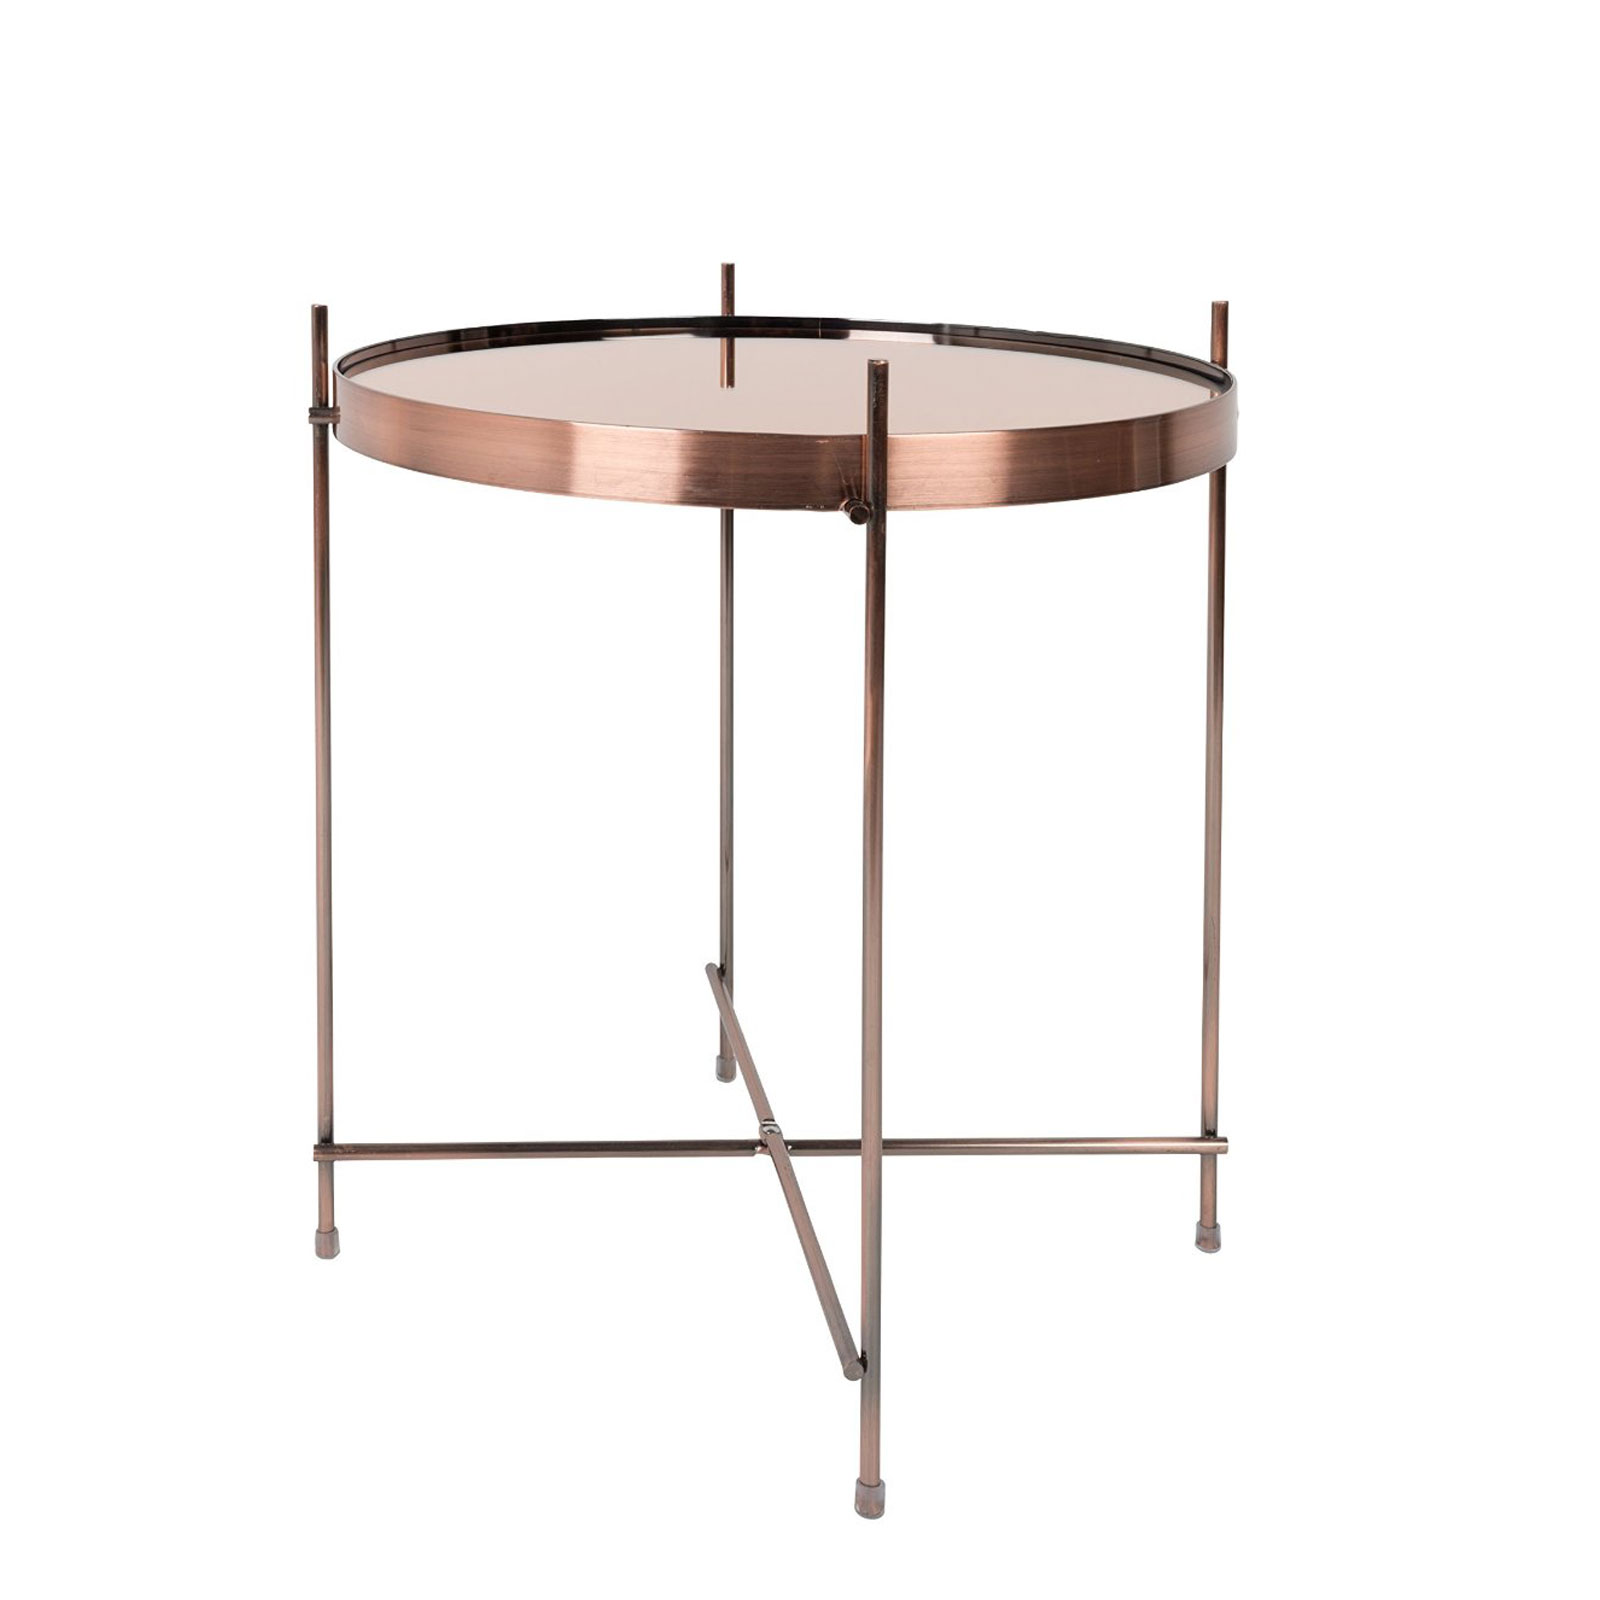 Industrial Unique Metal Designer Coffee Table: Copper Metal Glass Side Table Modern Designer Coffee End